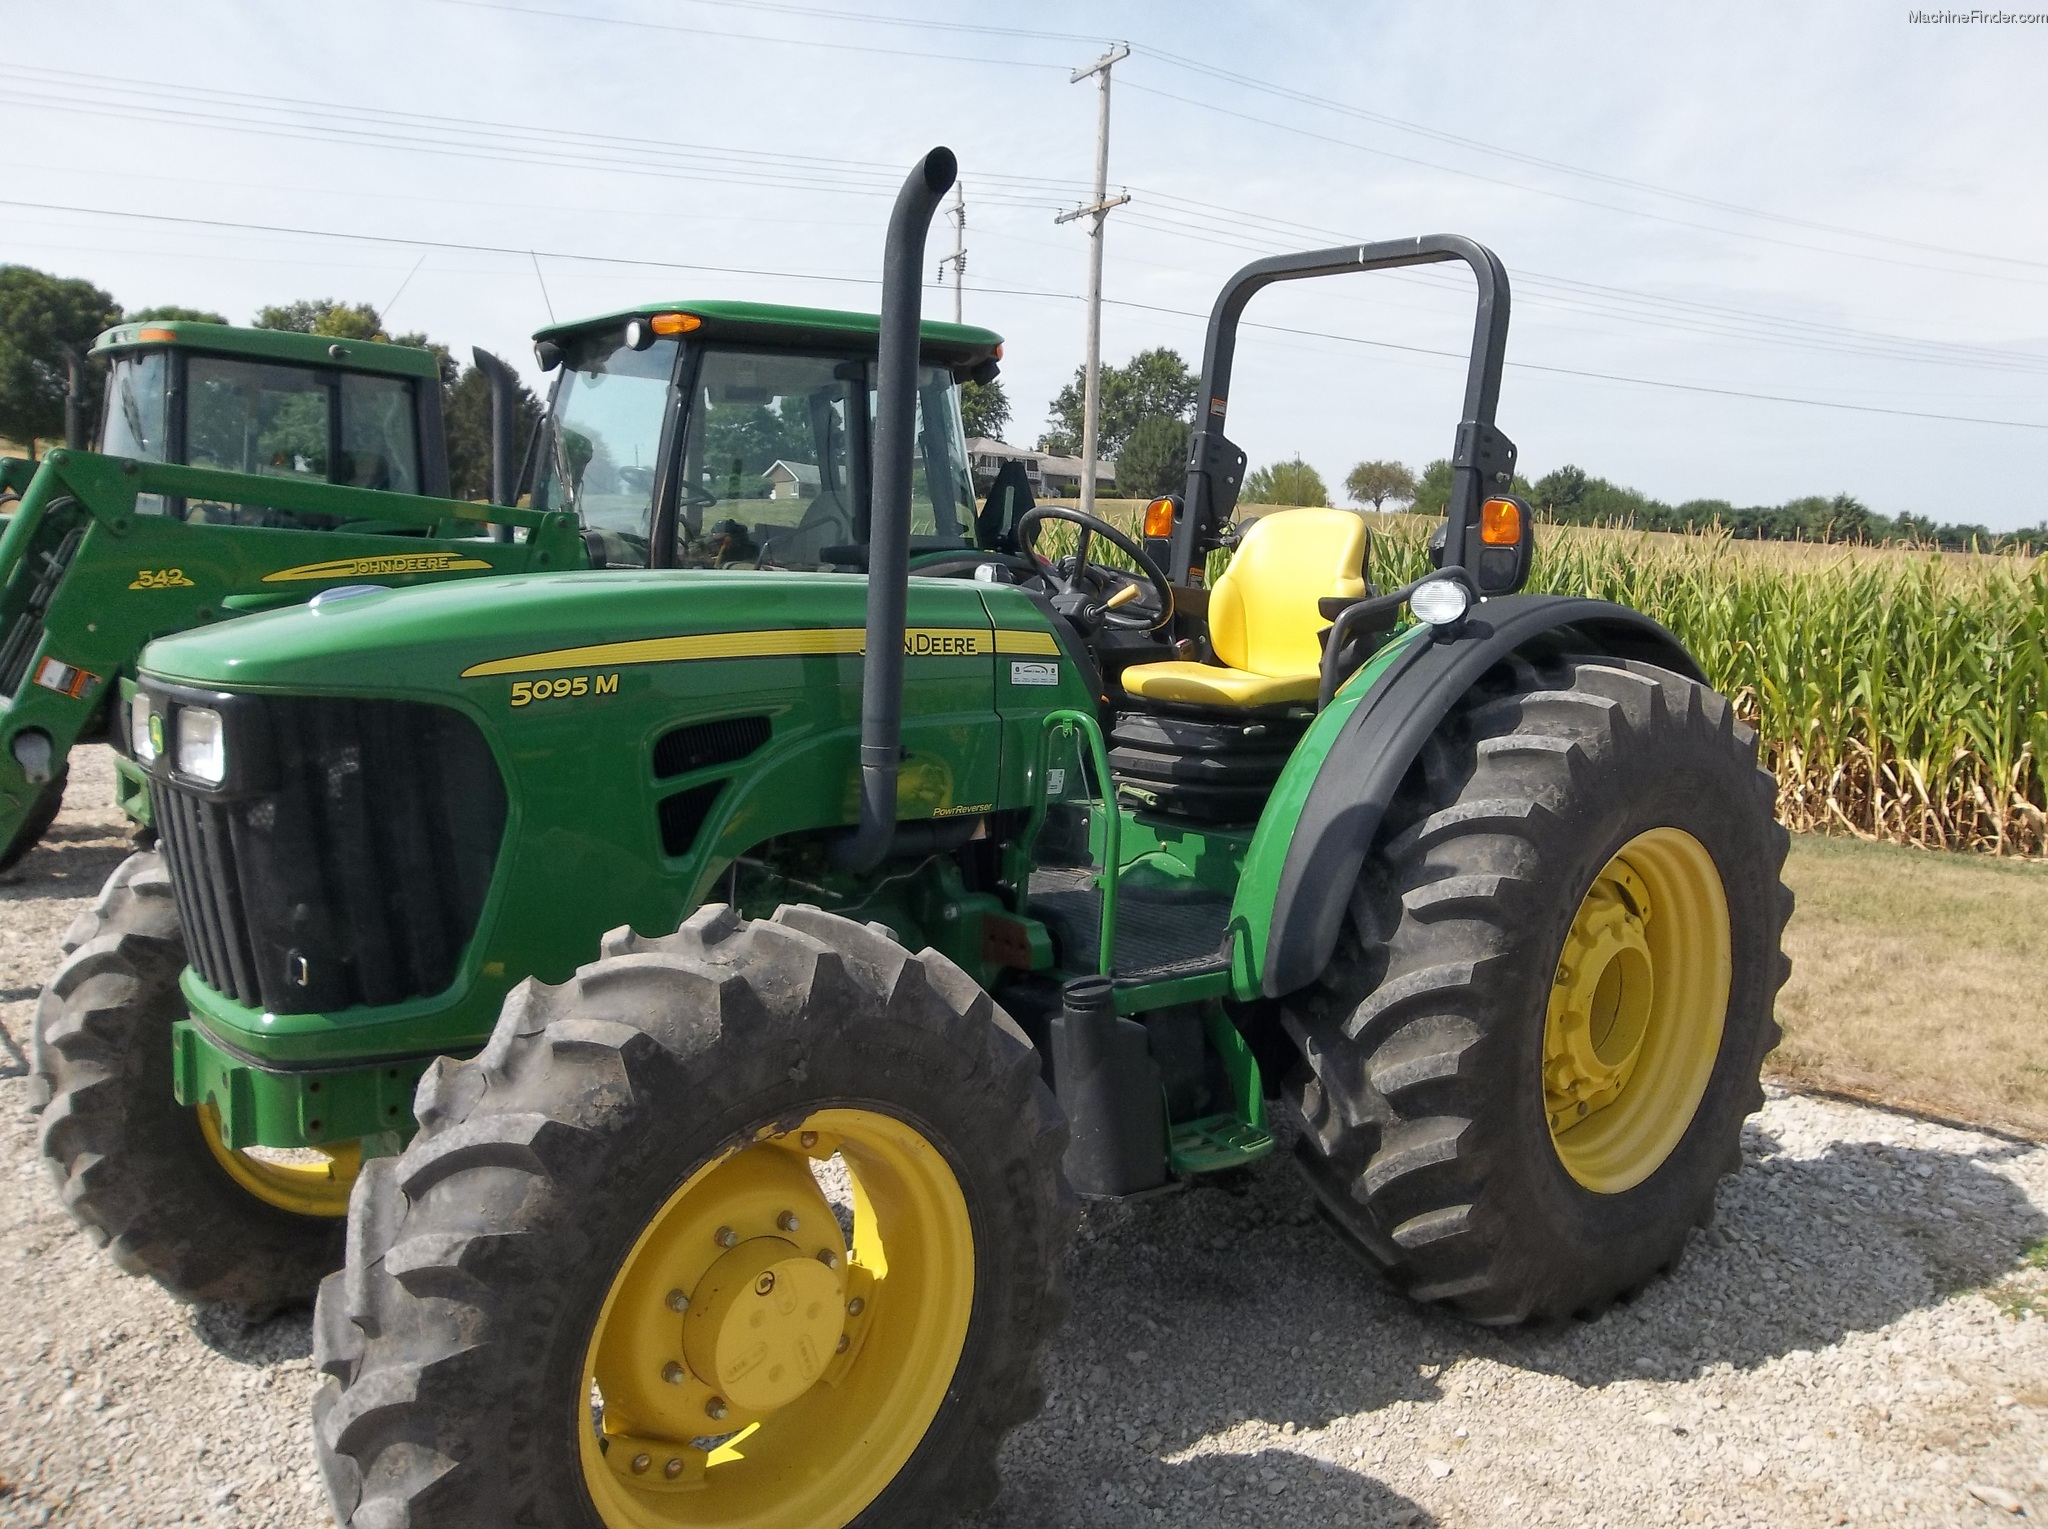 John Deere 944 http://www.machinefinder.com/ww/en-US/machine/2009-john-deere-5095m-tractor-2303305